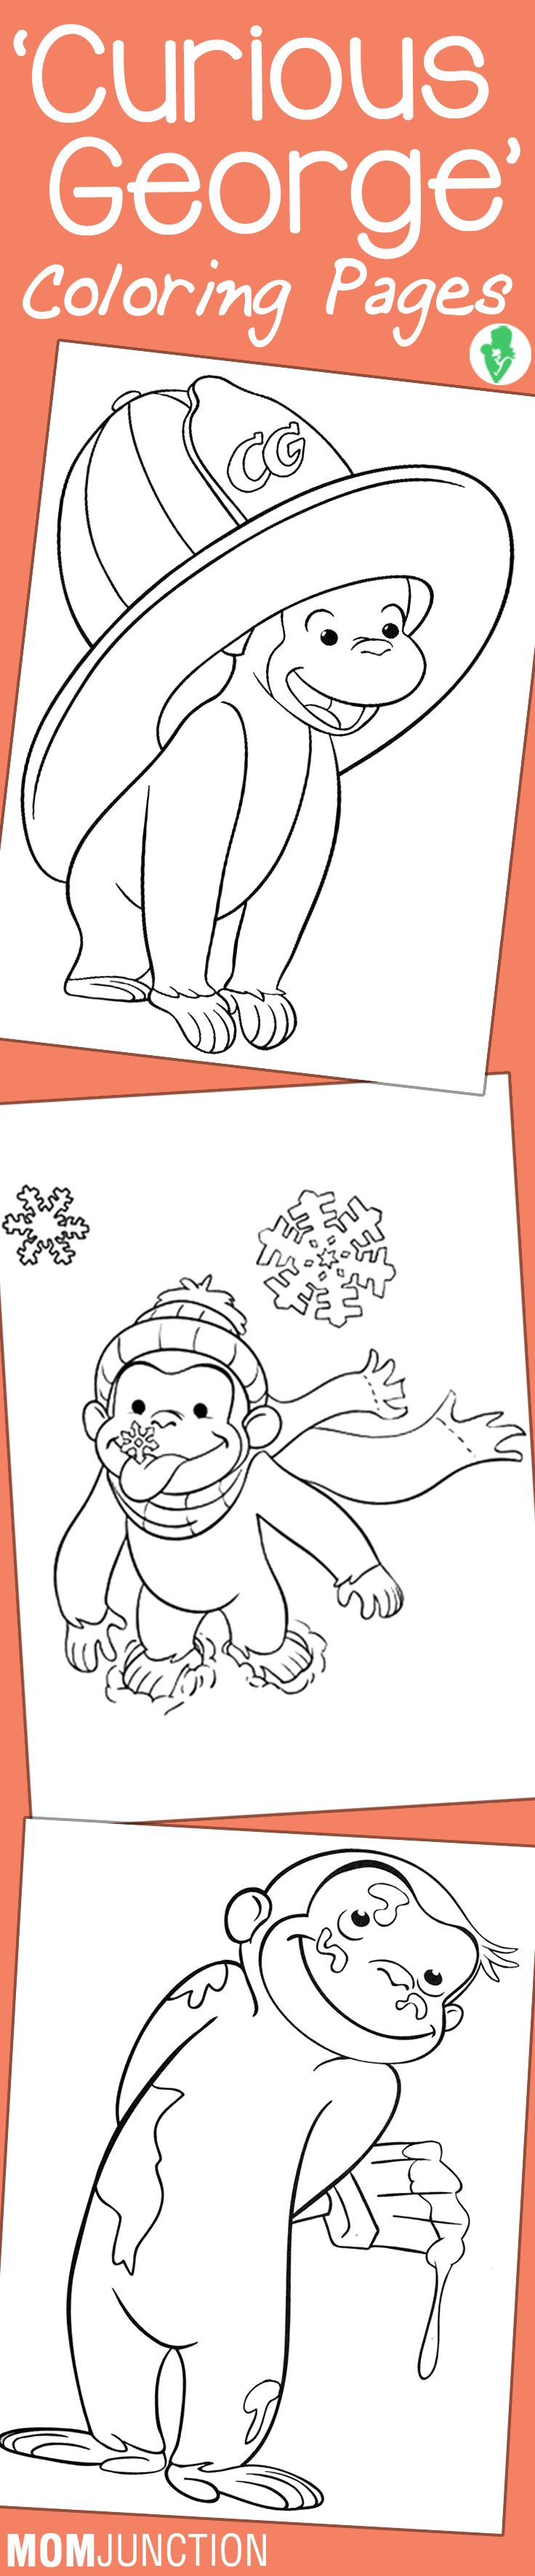 Best Curious George Coloring Pages For Your Little Ones